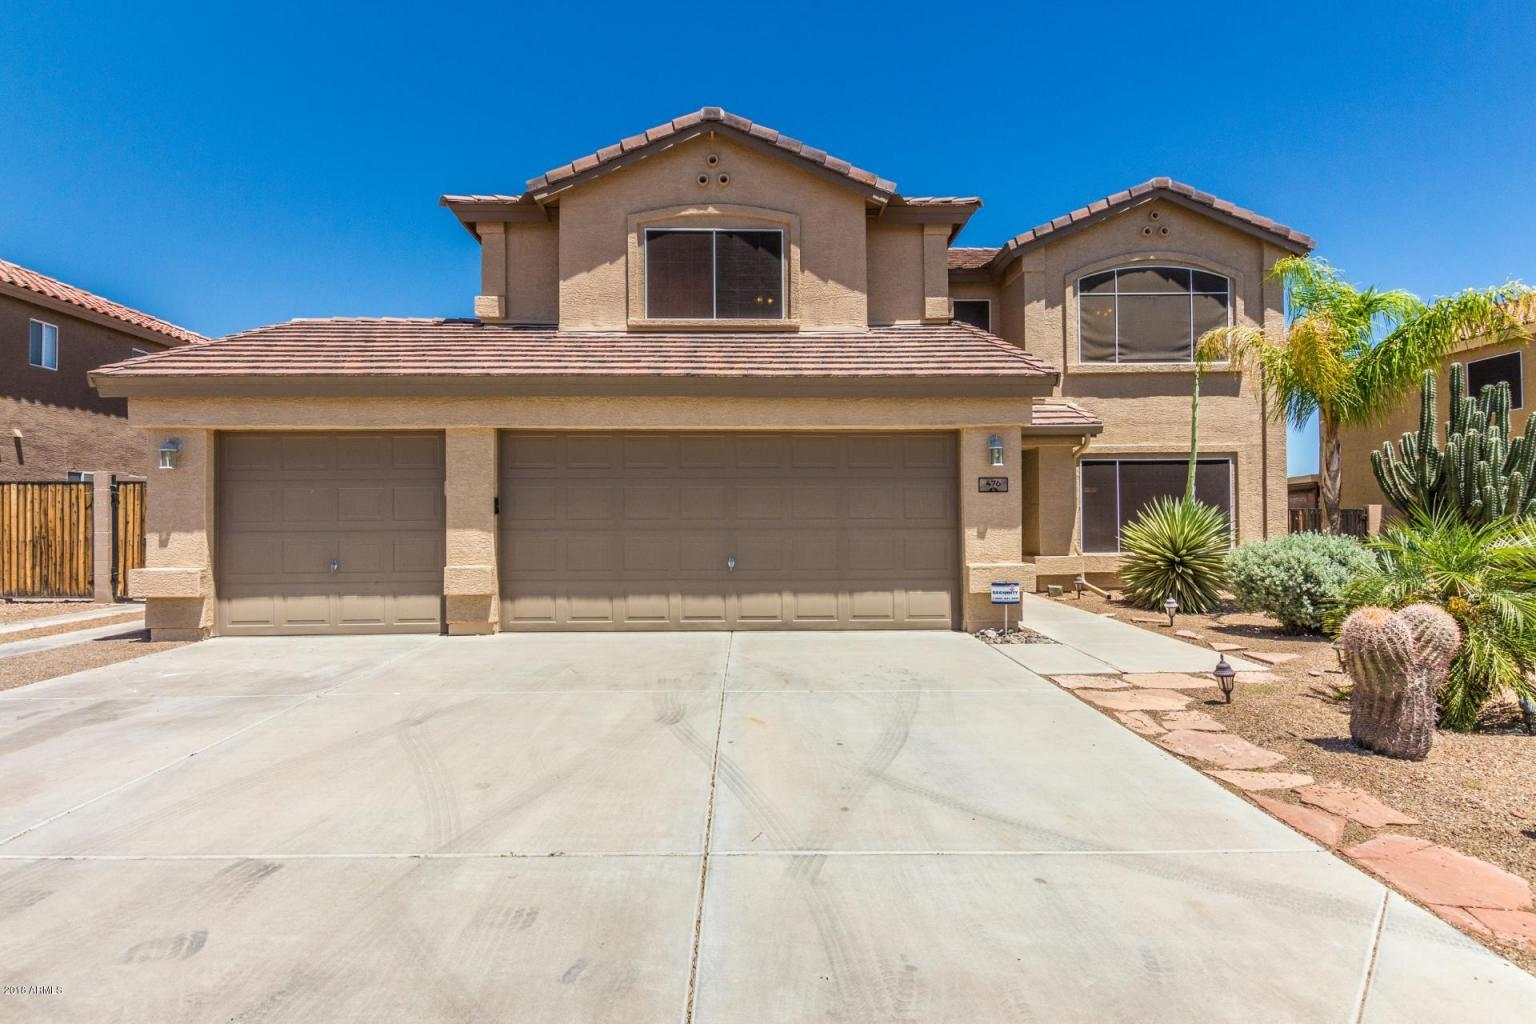 The Drew Team sells San Tan Valley